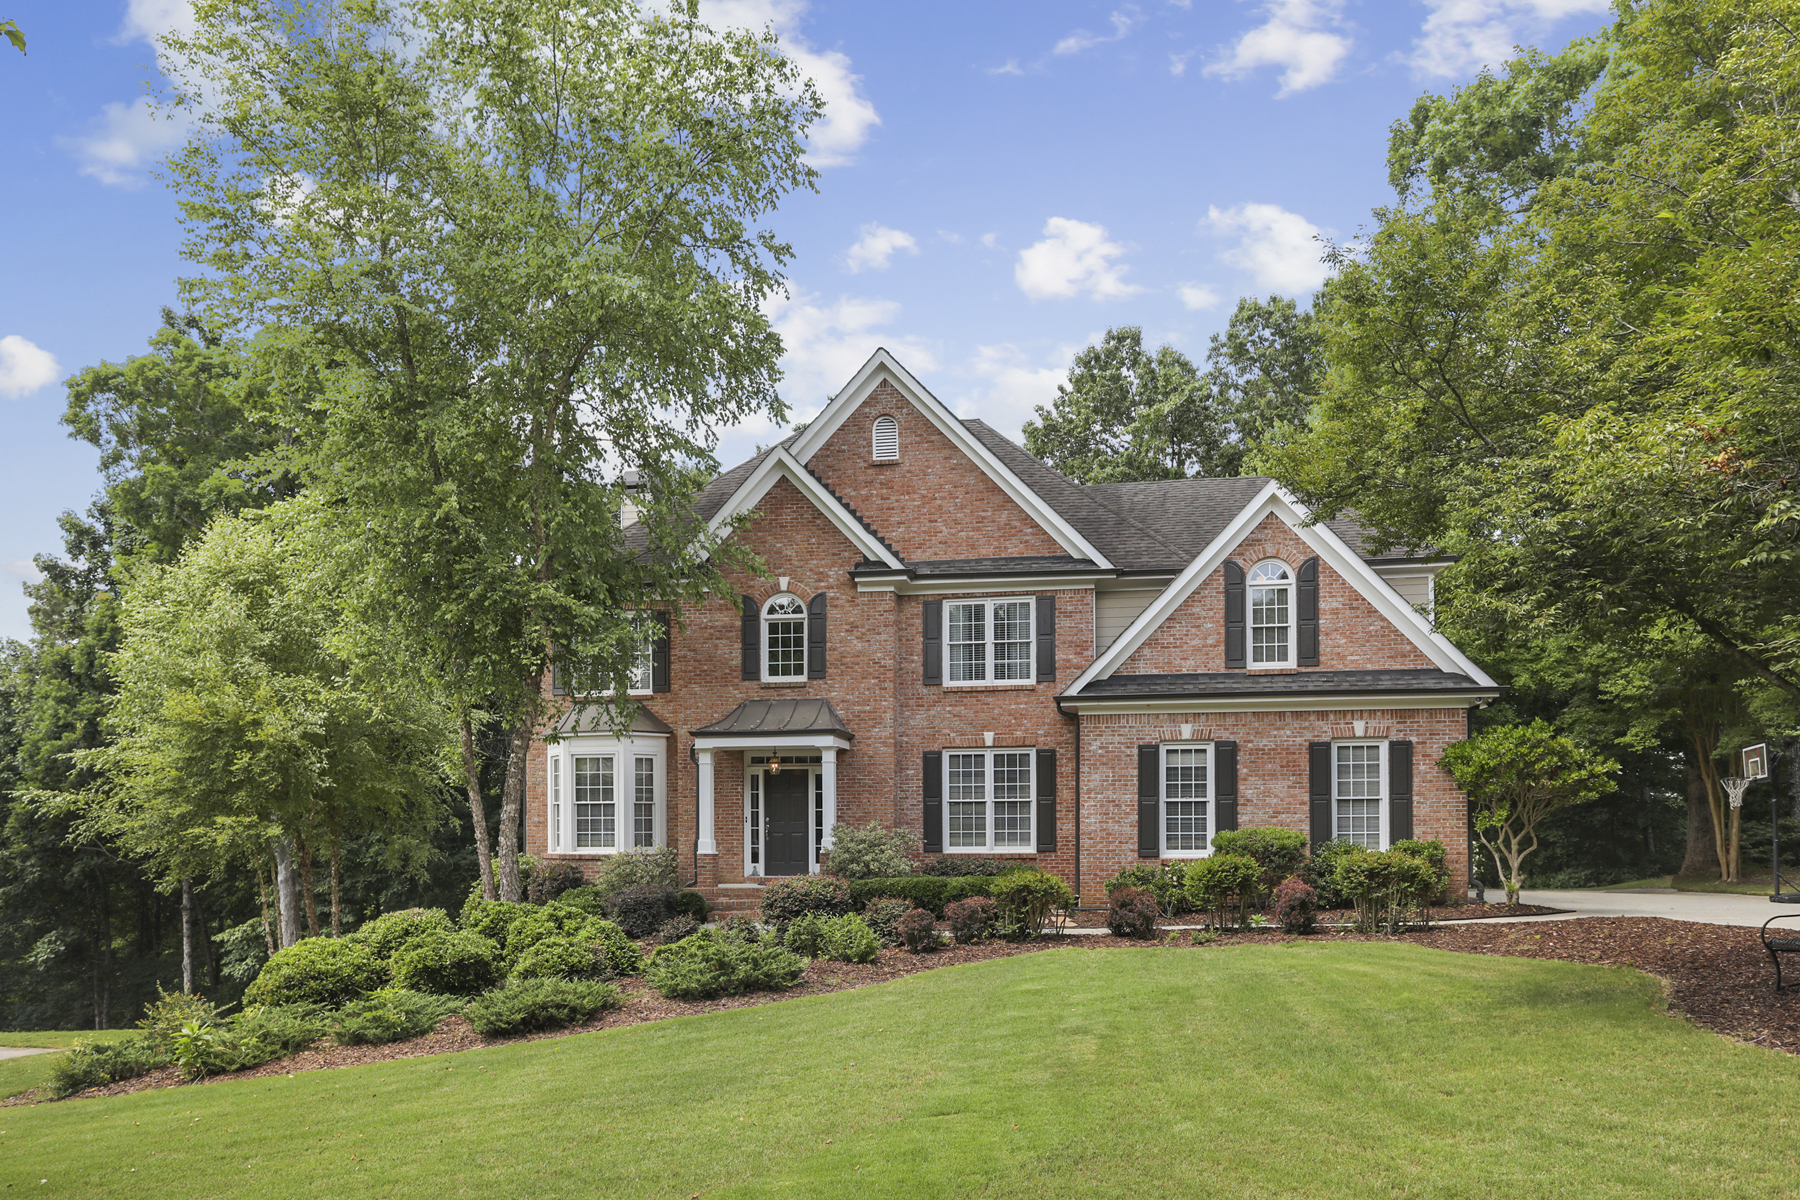 Single Family Homes for Active at Wild Timber Traditional 6178 Eagles Rest Trl Sugar Hill, Georgia 30518 United States